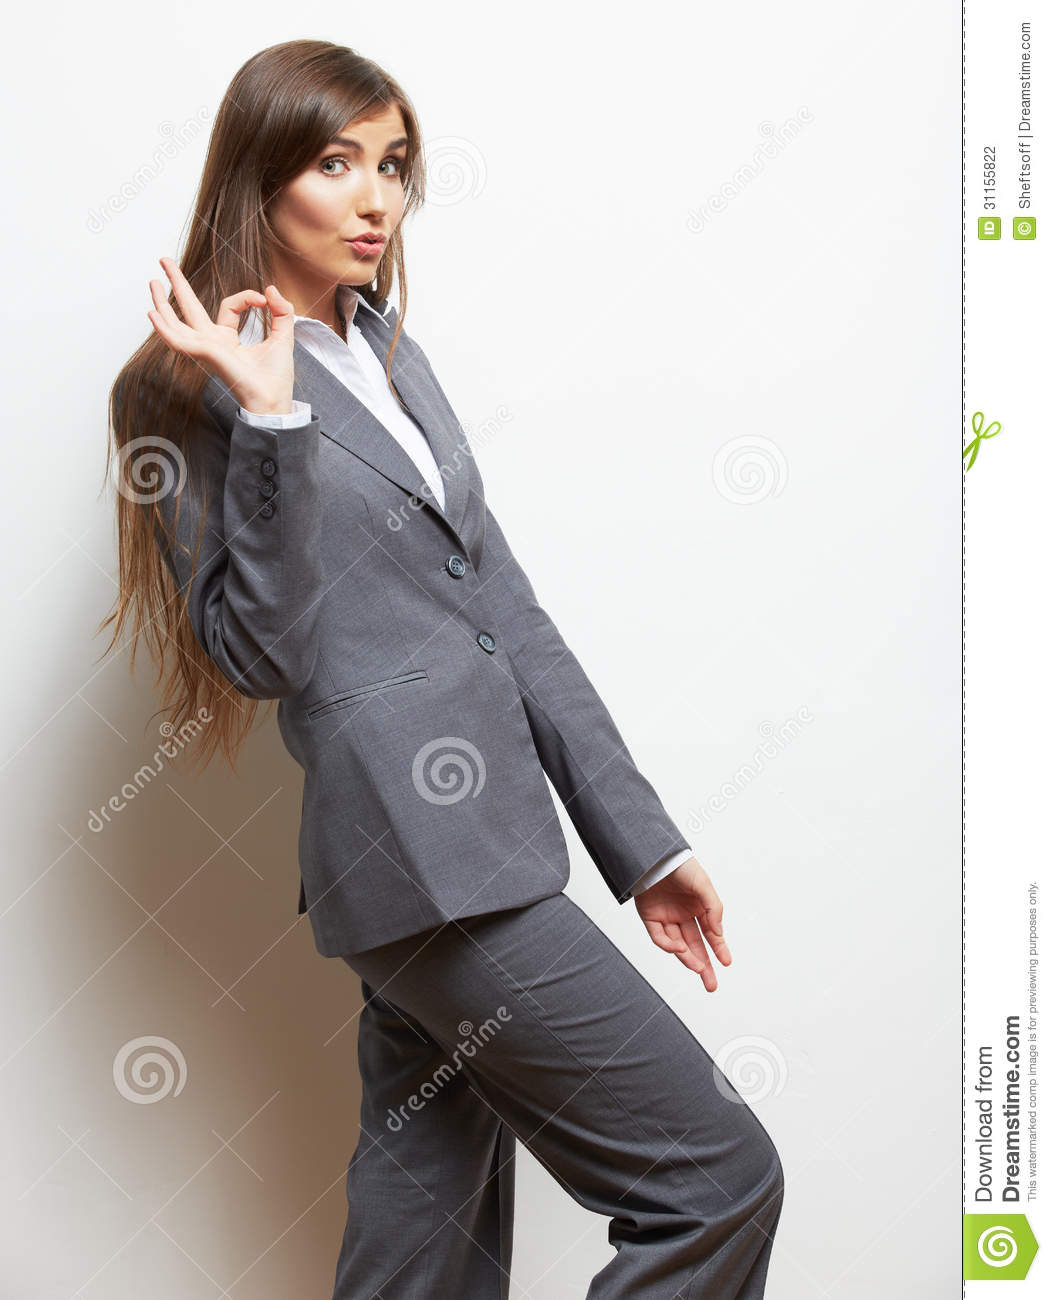 Business Woman Fashion Style Isolated Portrait Female